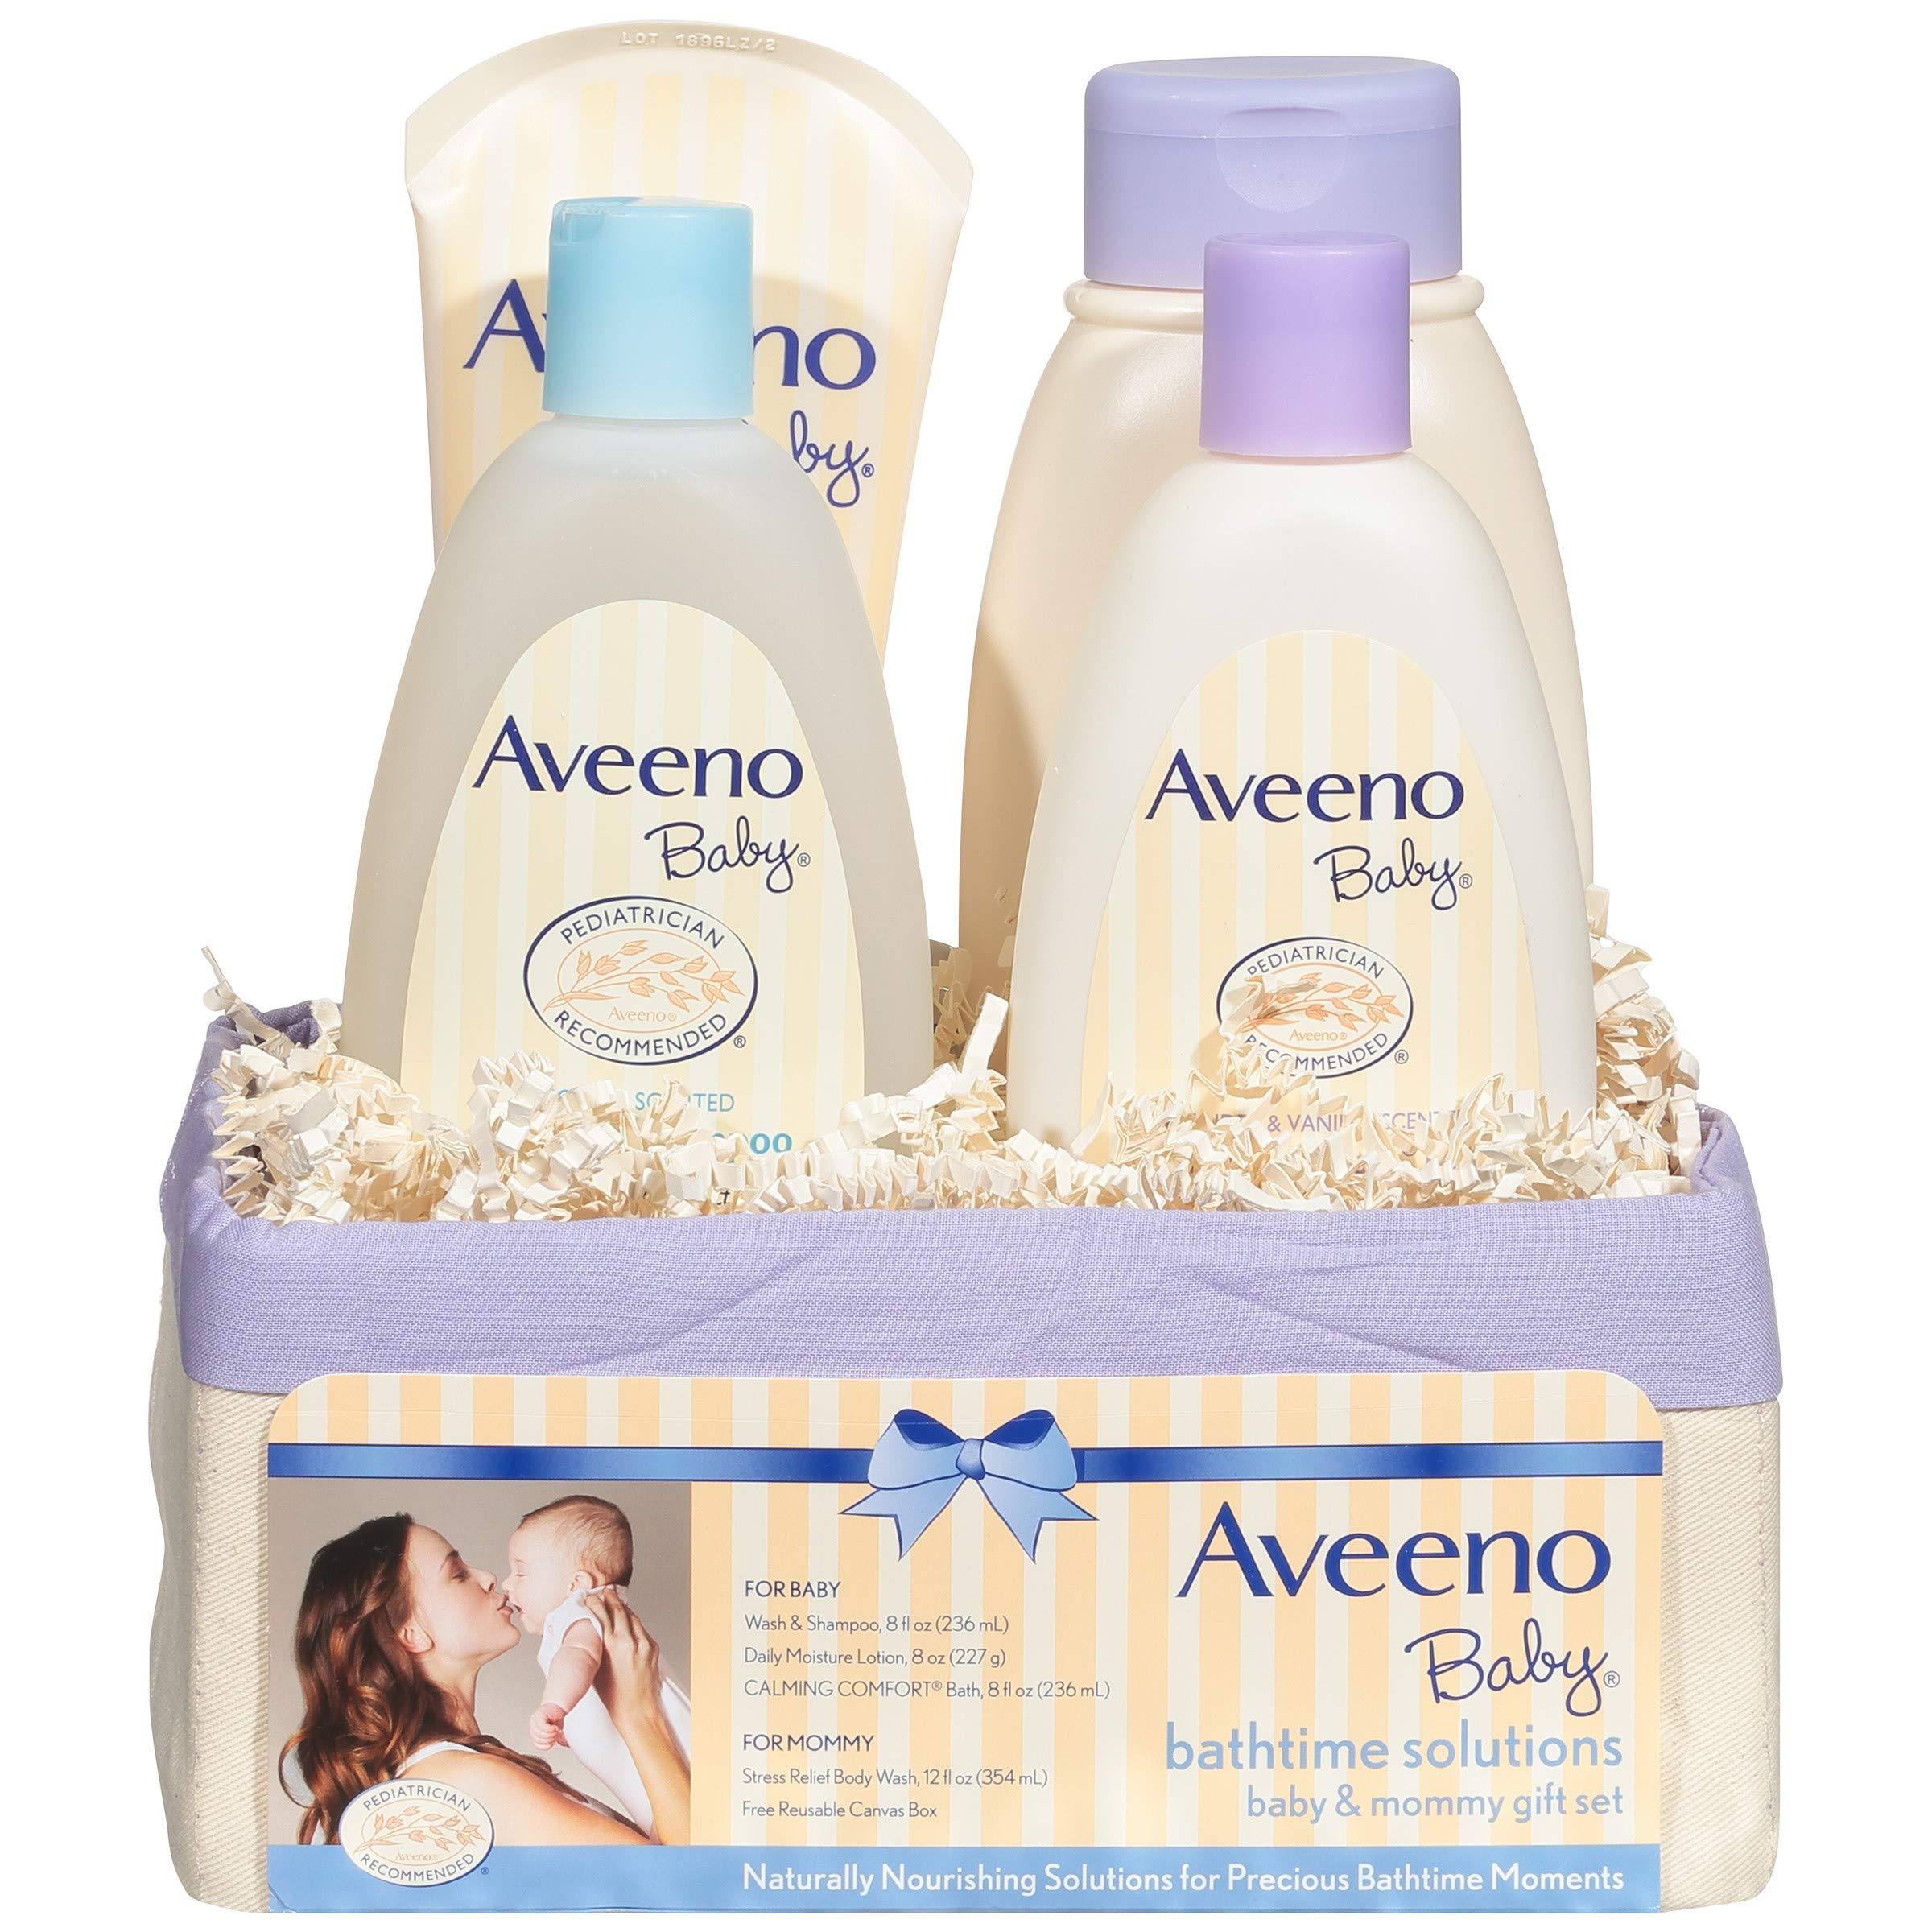 Aveeno Baby Daily Bathtime Solutions Gift Set to Nourish Skin for Baby and Mom, 4 items by Aveeno Baby